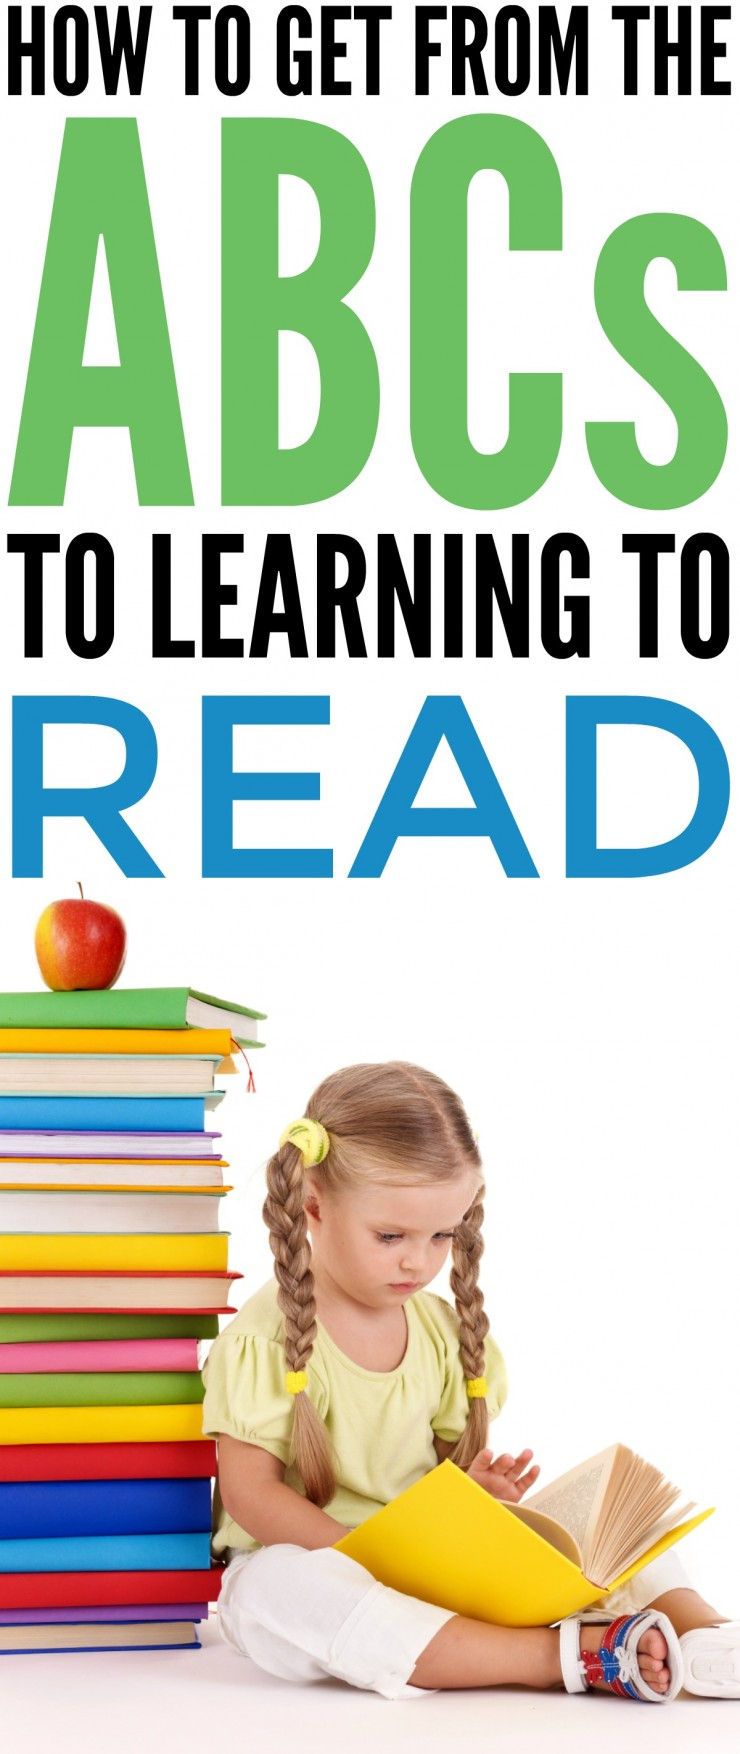 How to Get from the ABCs to Learning to Read